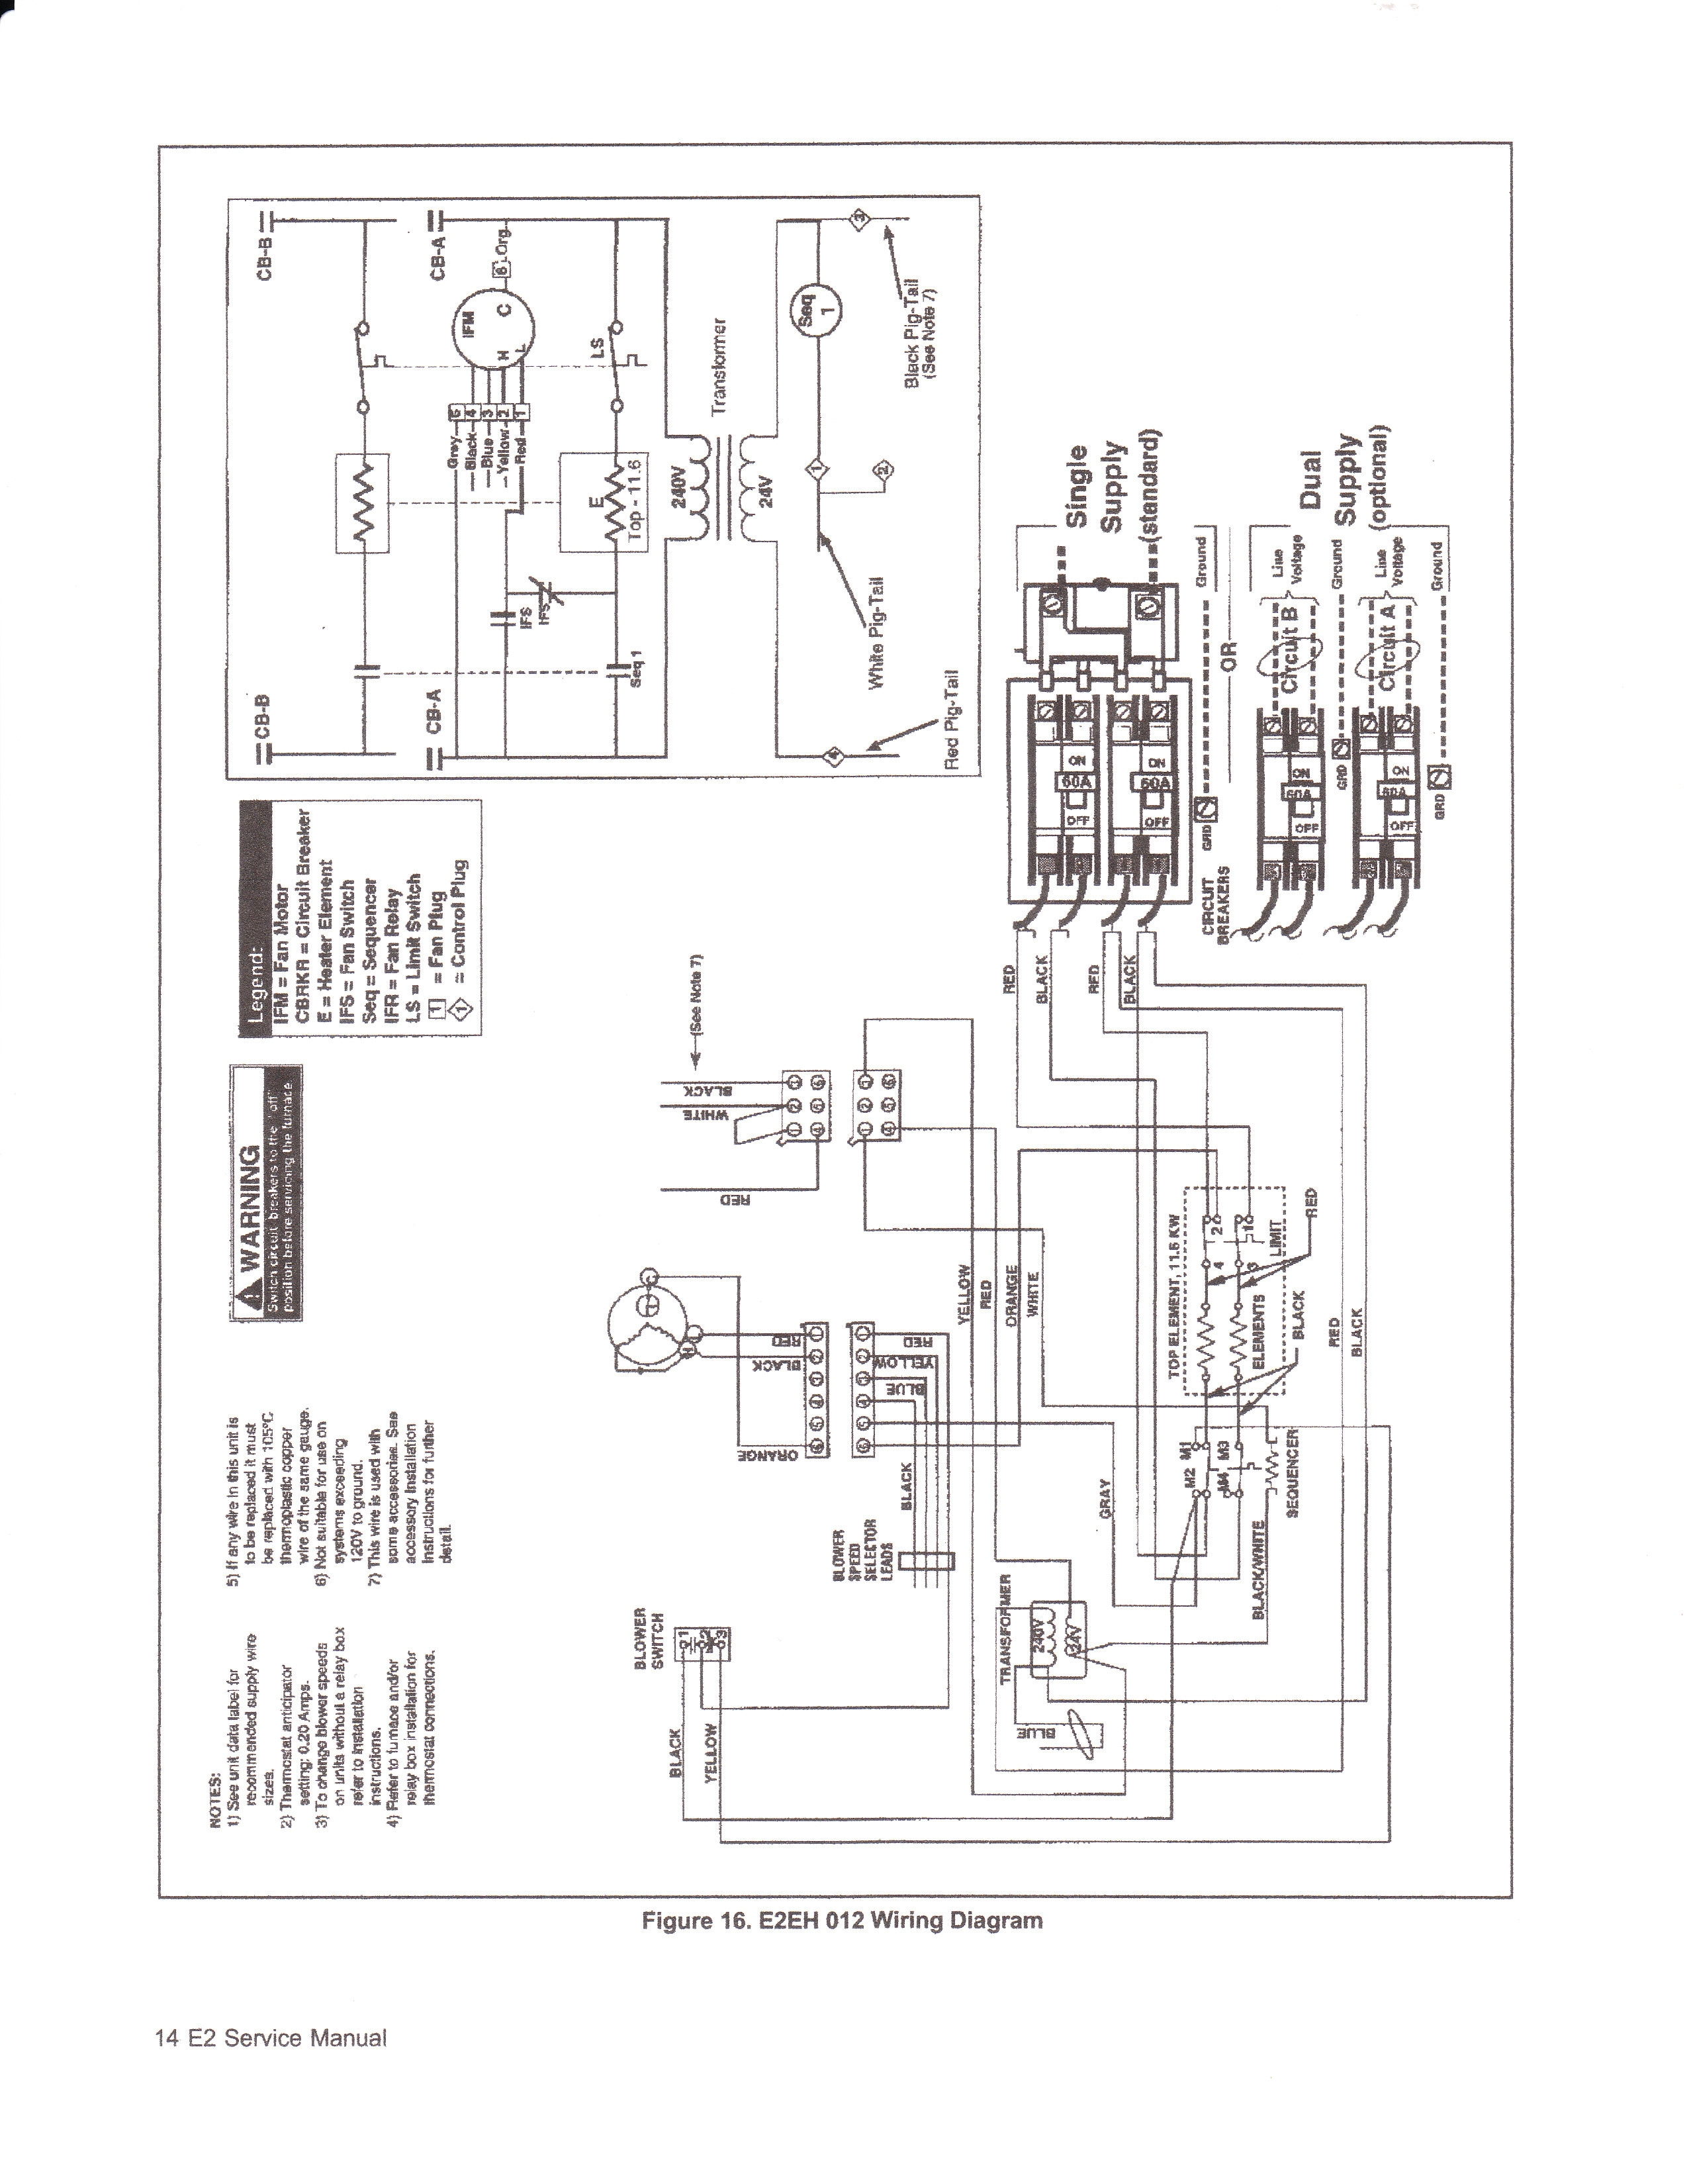 electric furnace wiring diagram sequencer Collection-Wiring Diagram for Furnace with Ac New Electric Furnace Wiring Diagram Sequencer 1-o